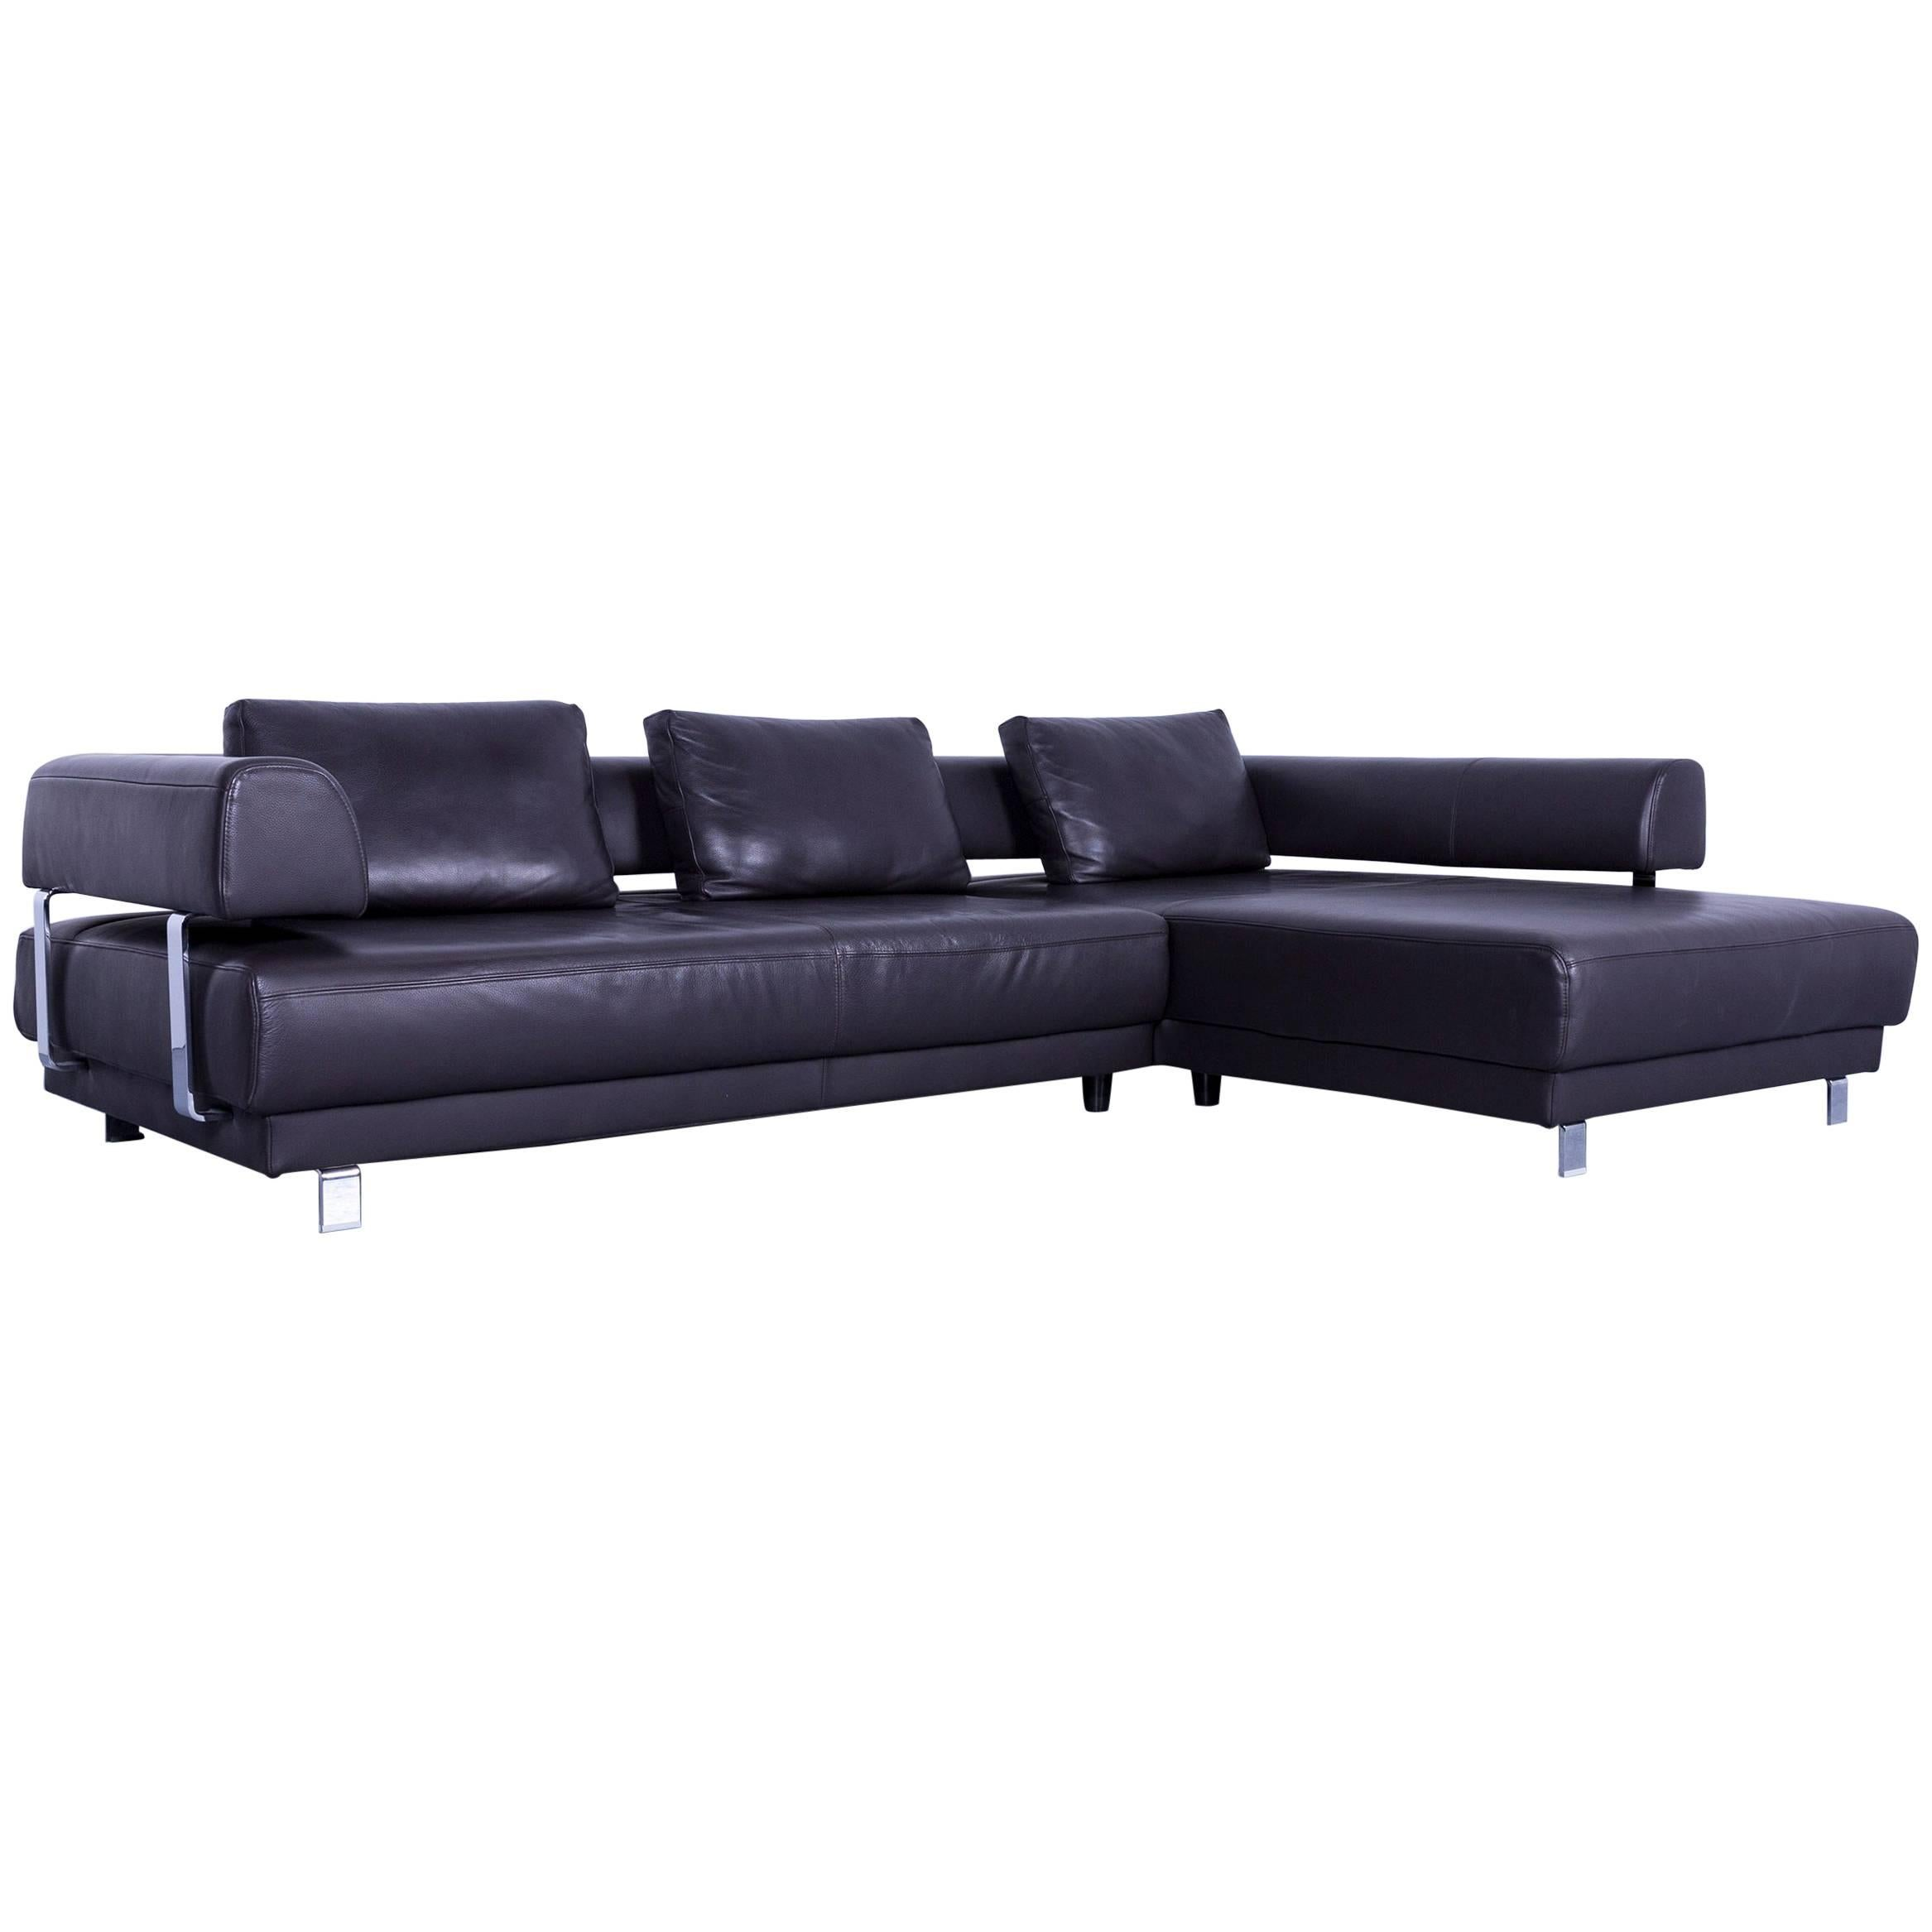 sofa ewald schillig simple daria von ewald schillig. Black Bedroom Furniture Sets. Home Design Ideas